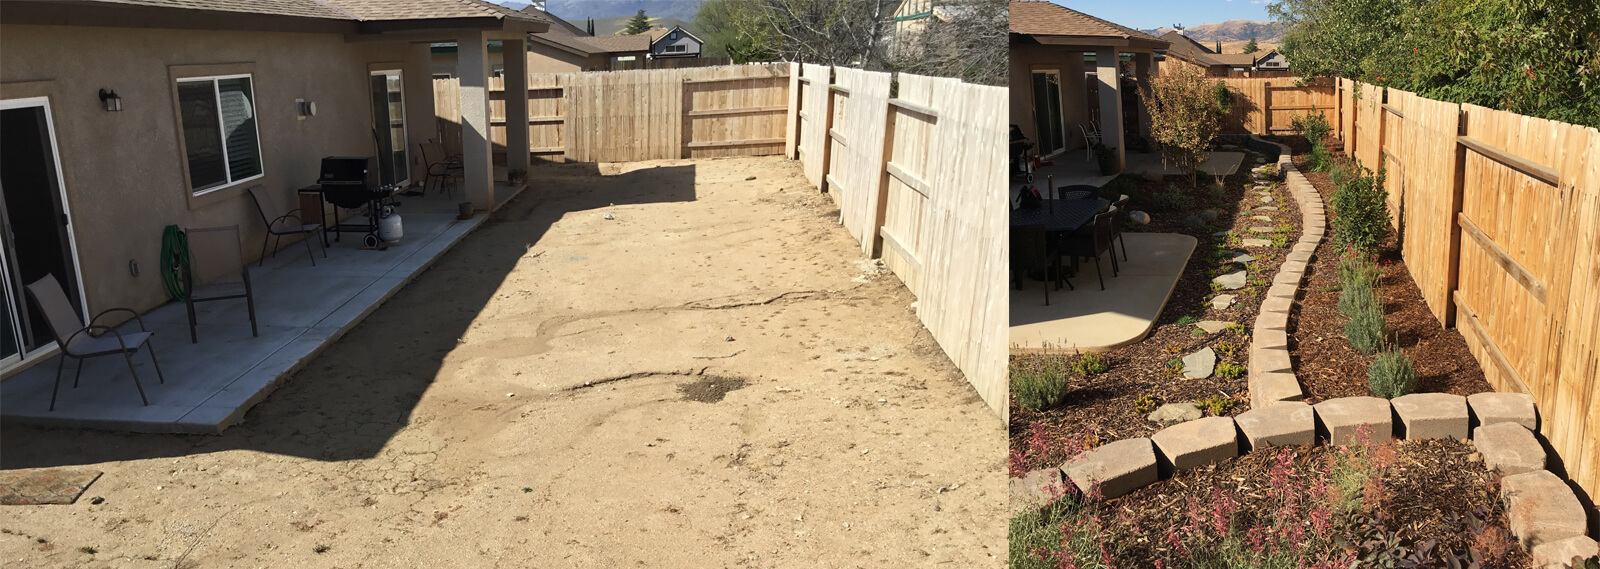 tehachapi landscape makeover before and after